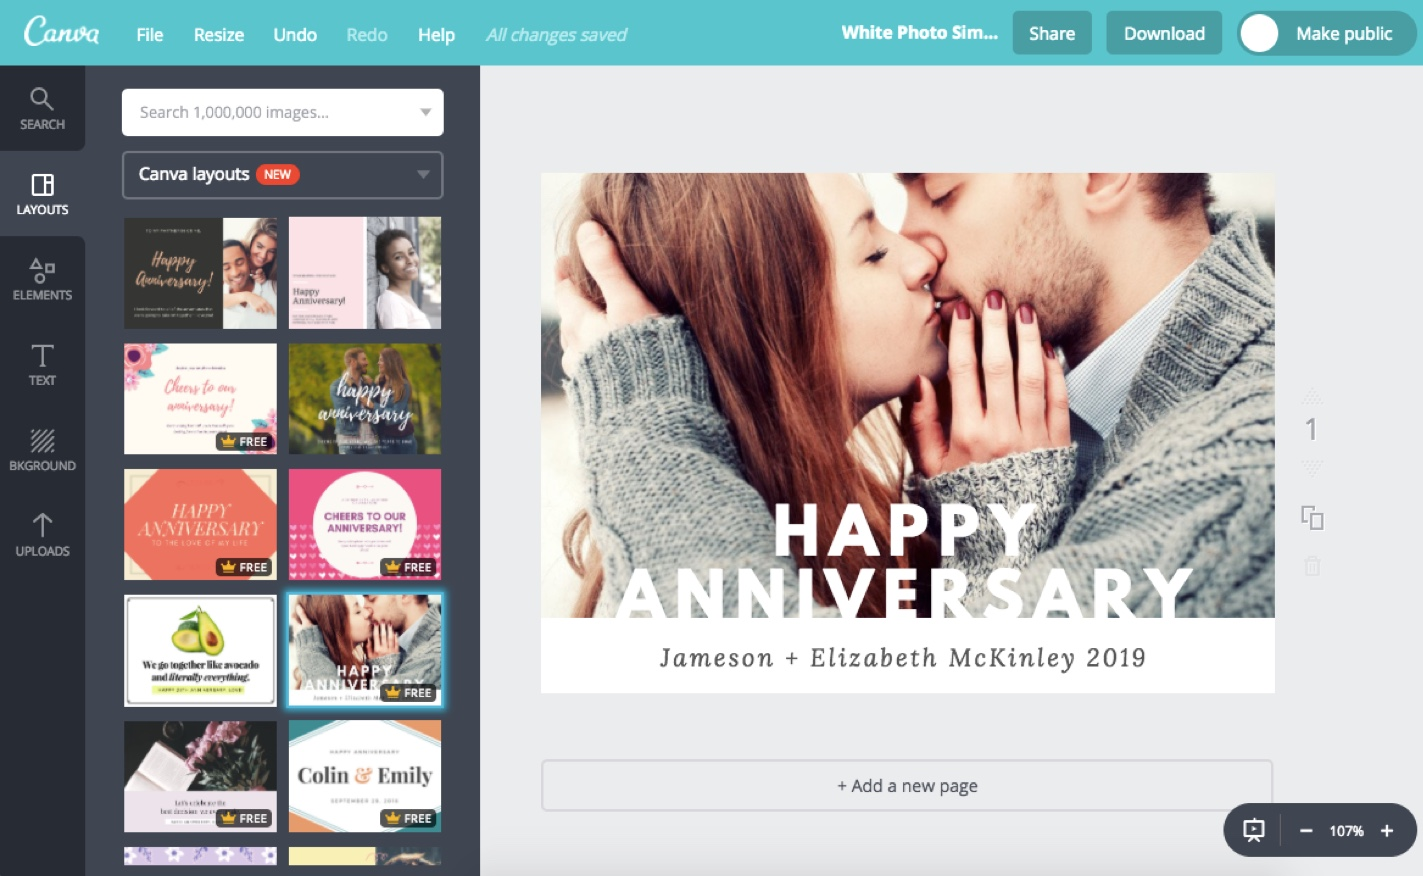 Design Anniversary Cards Online For Free With Canva